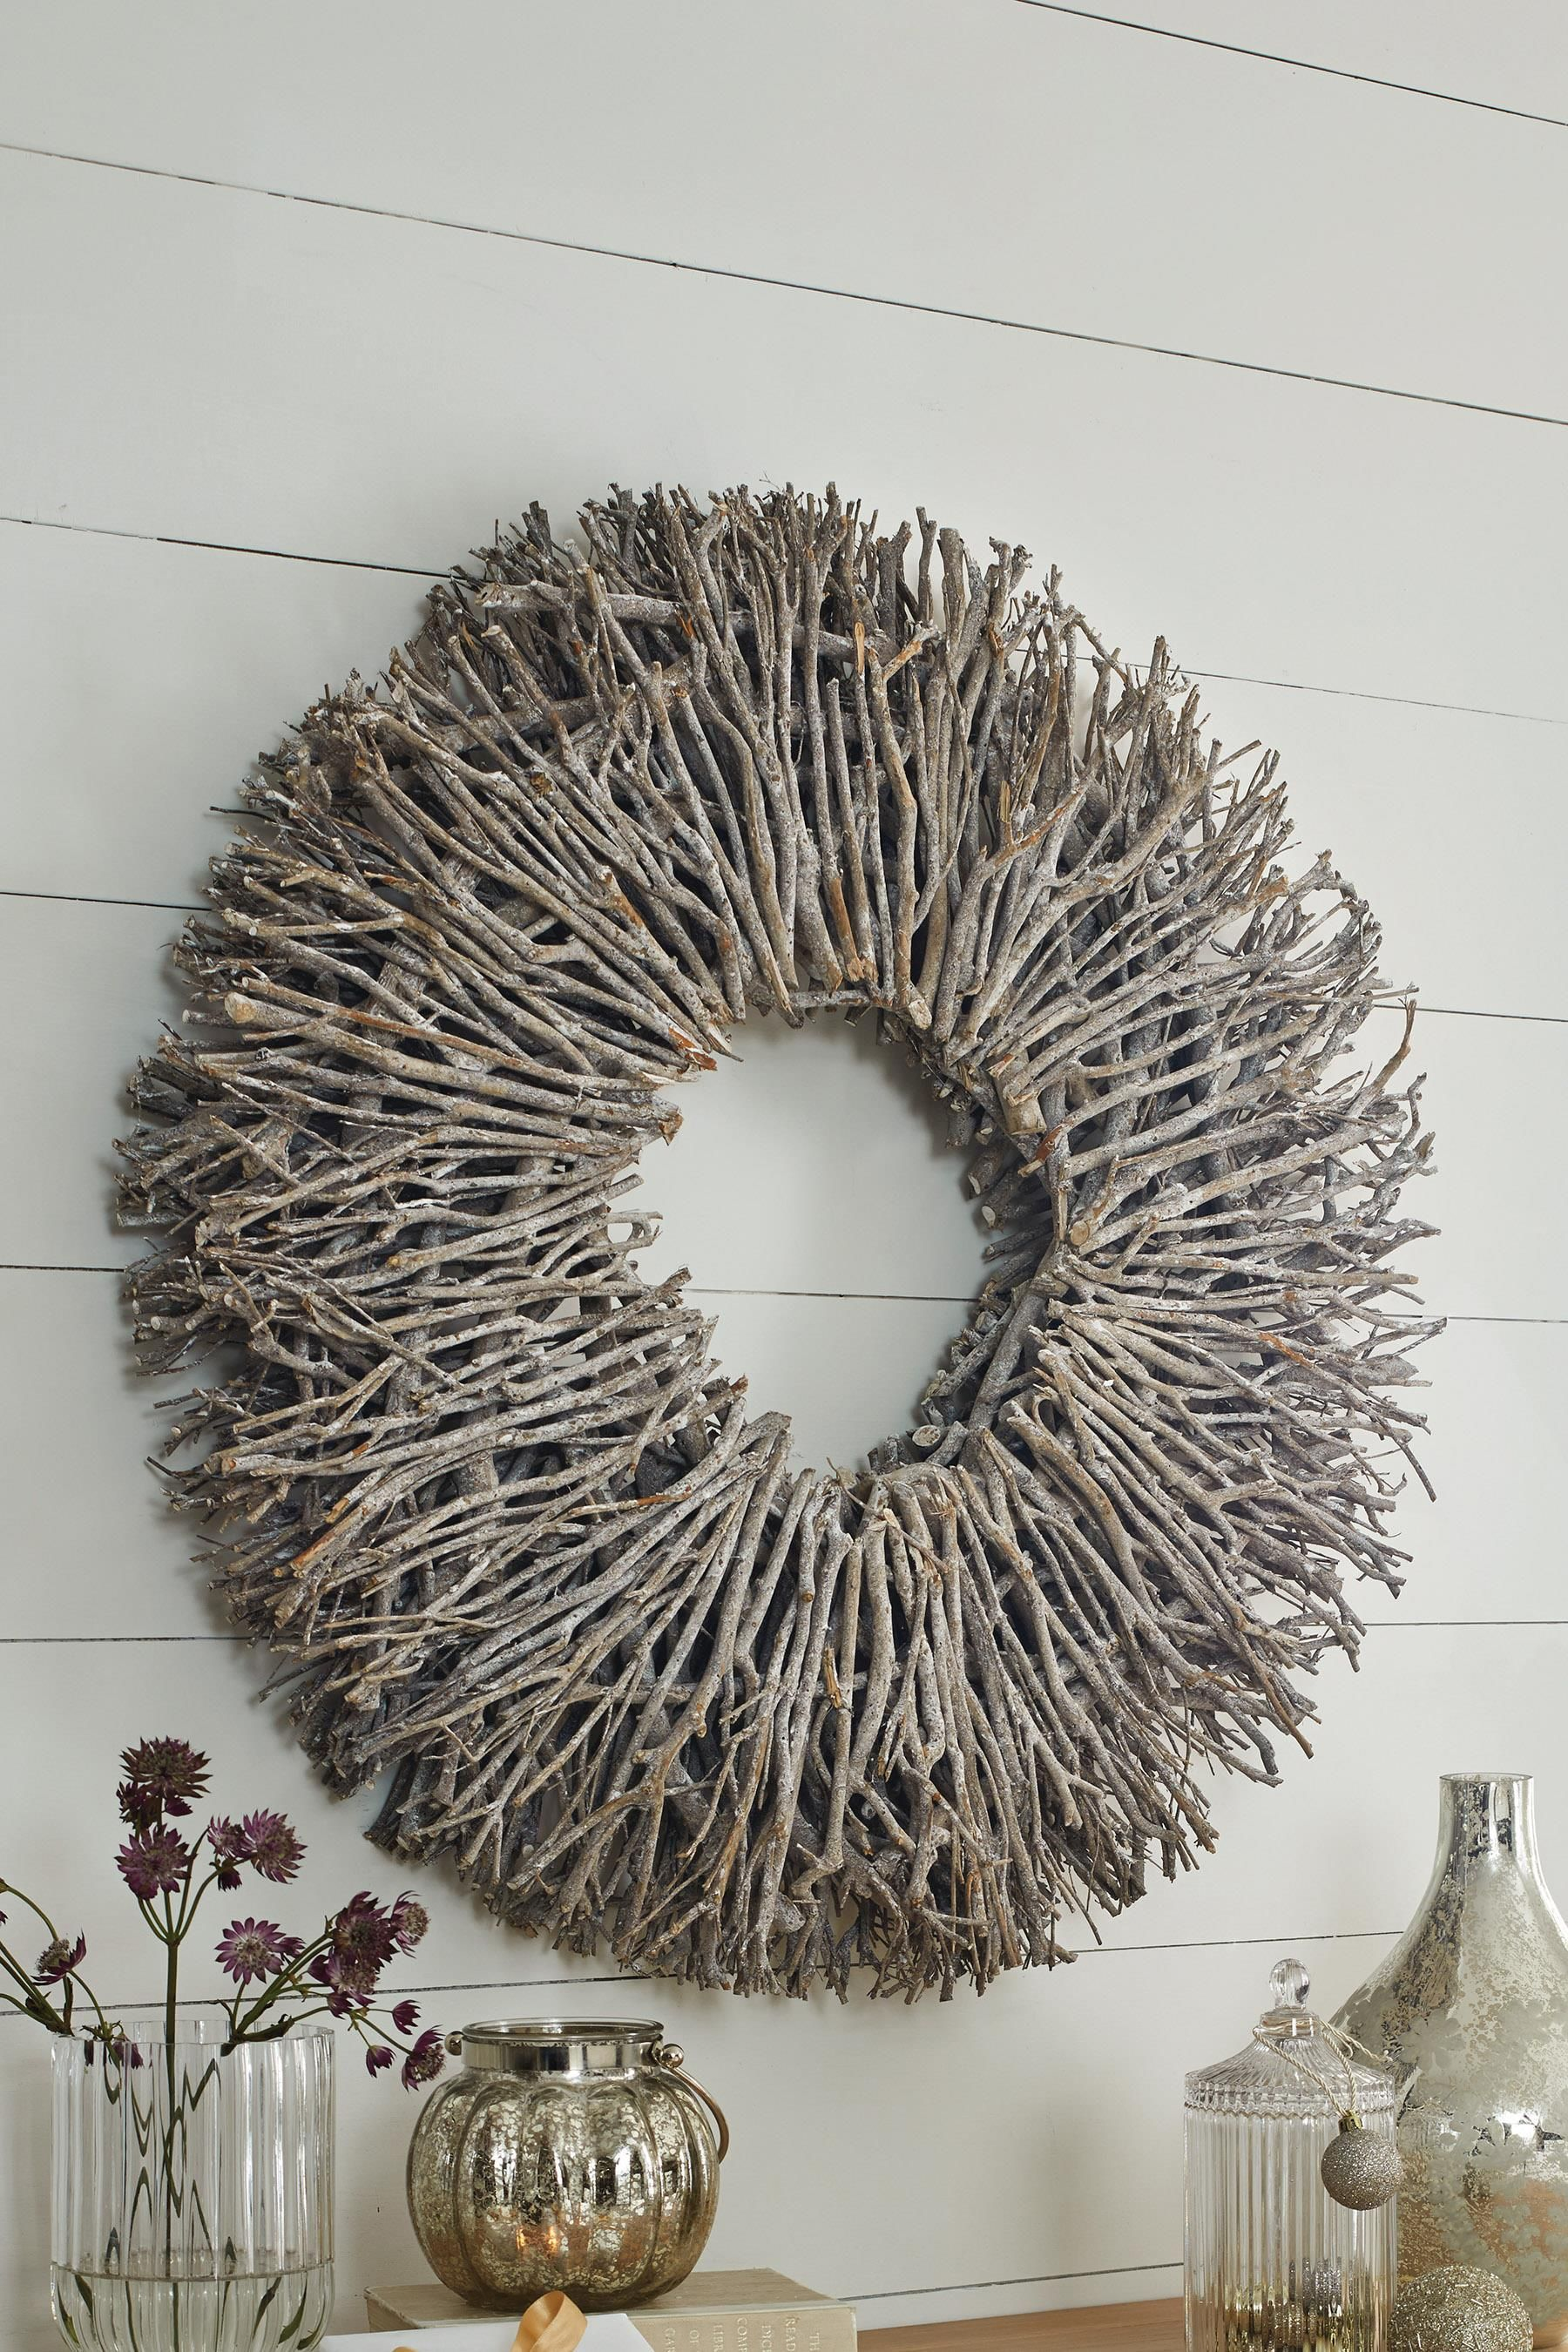 Twig Wreath from the Next UK Interior ideas